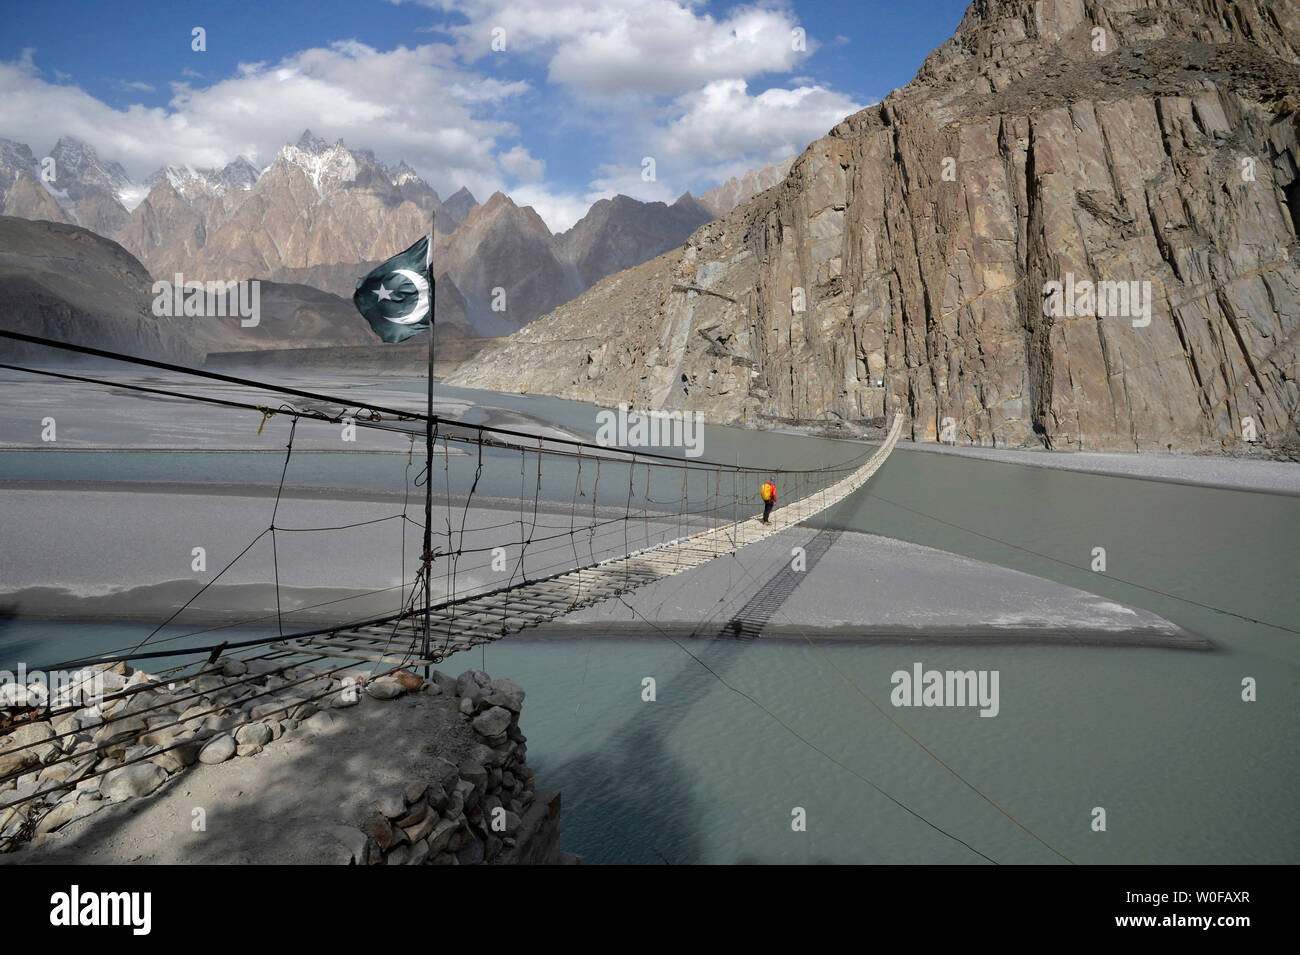 Pakistan, Gilgit Baltistan area, Passu, a man is crossing the Hunza river on the Hosseini suspension bridge in front of the Karakoram mountains - Stock Image